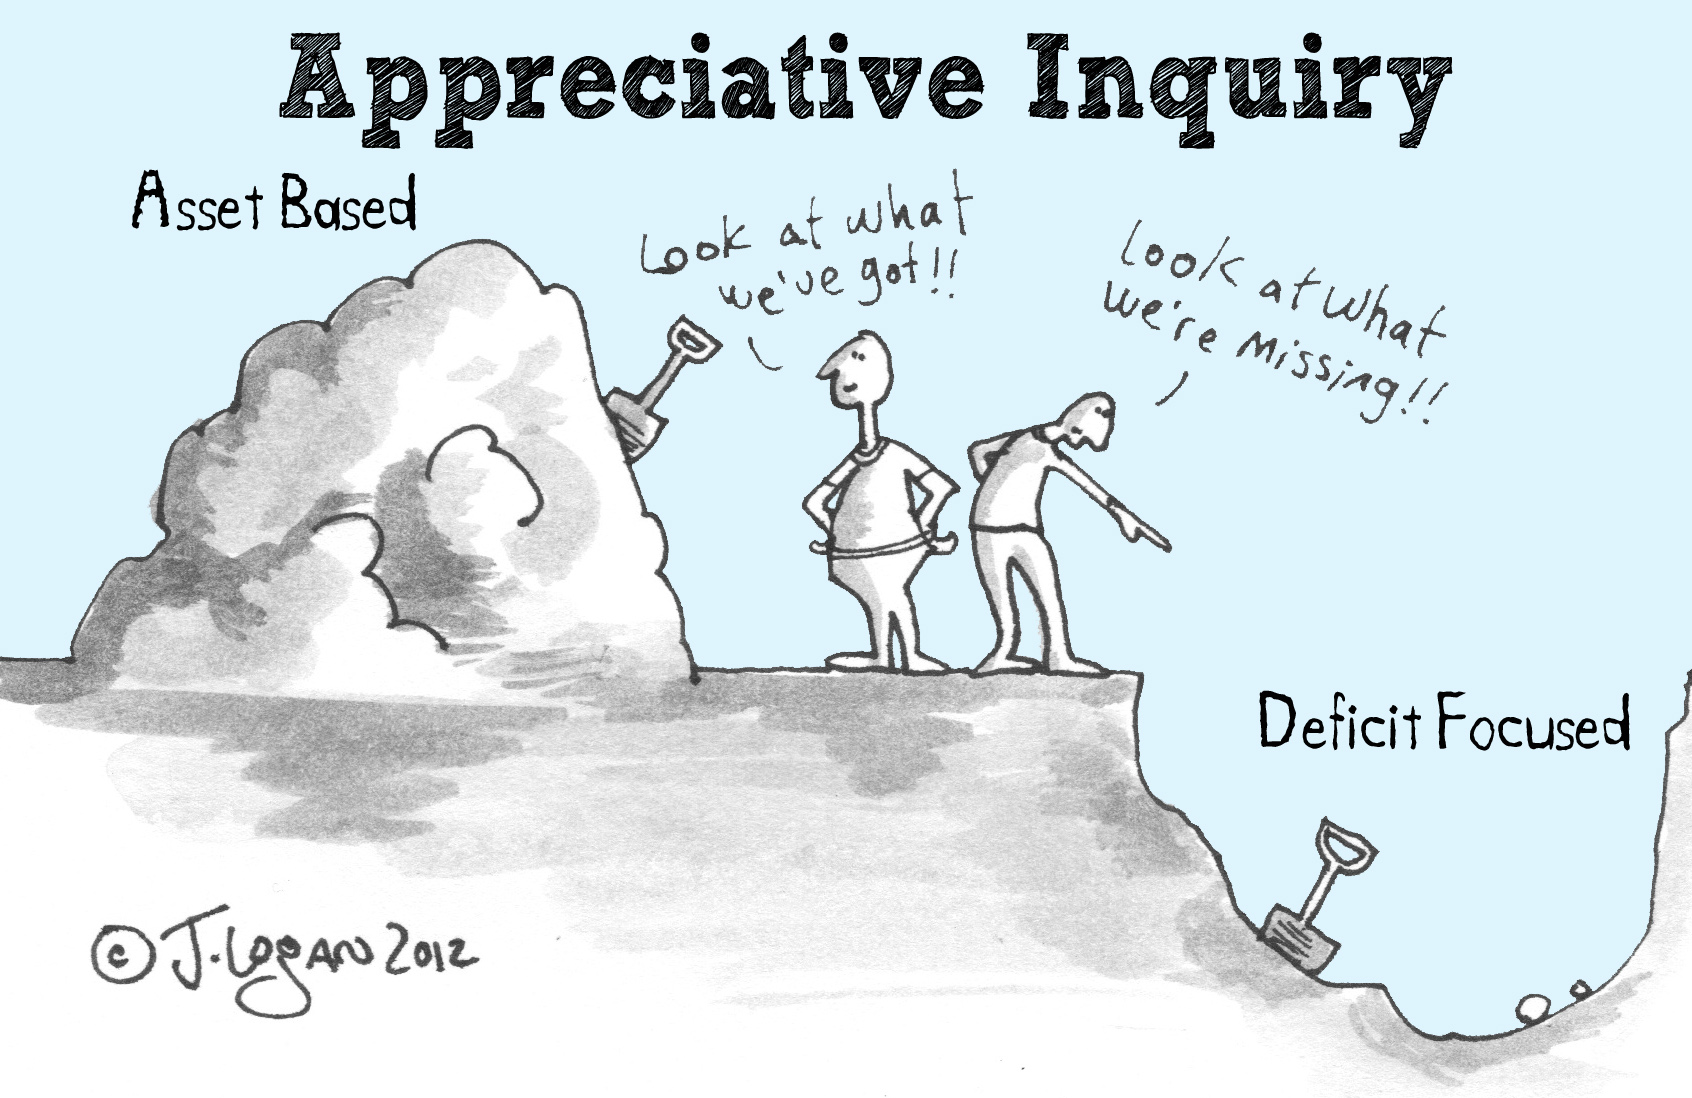 asset based-deficit based appreciative inquiry